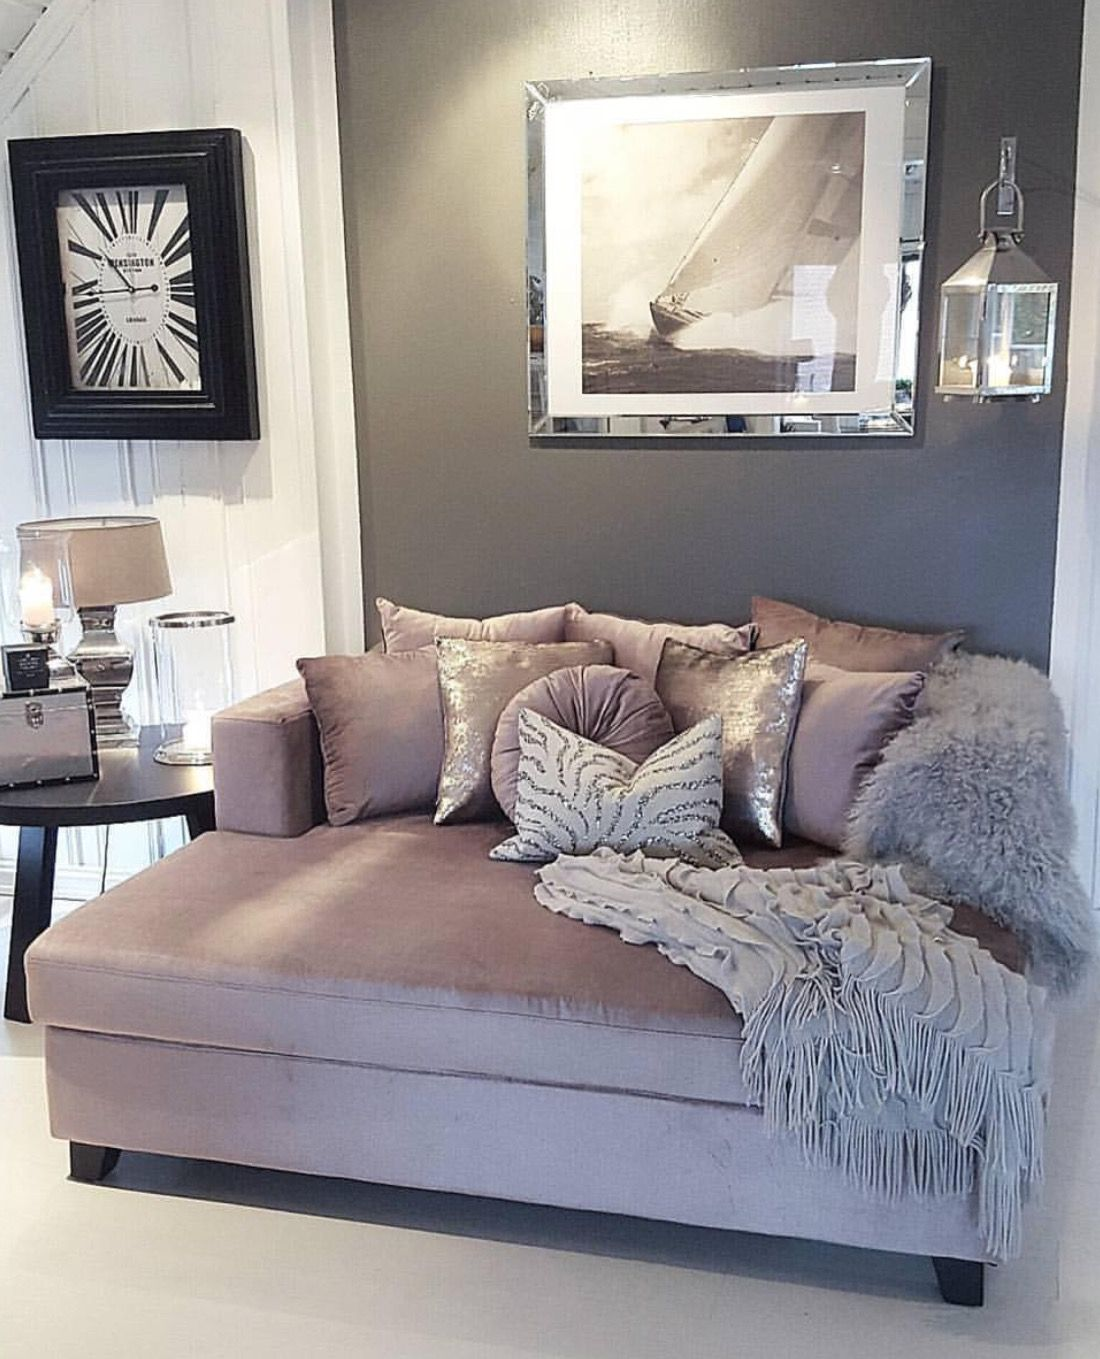 Living Room In Bedroom: Love This Mauve, Gray, And White Color Scheme For The